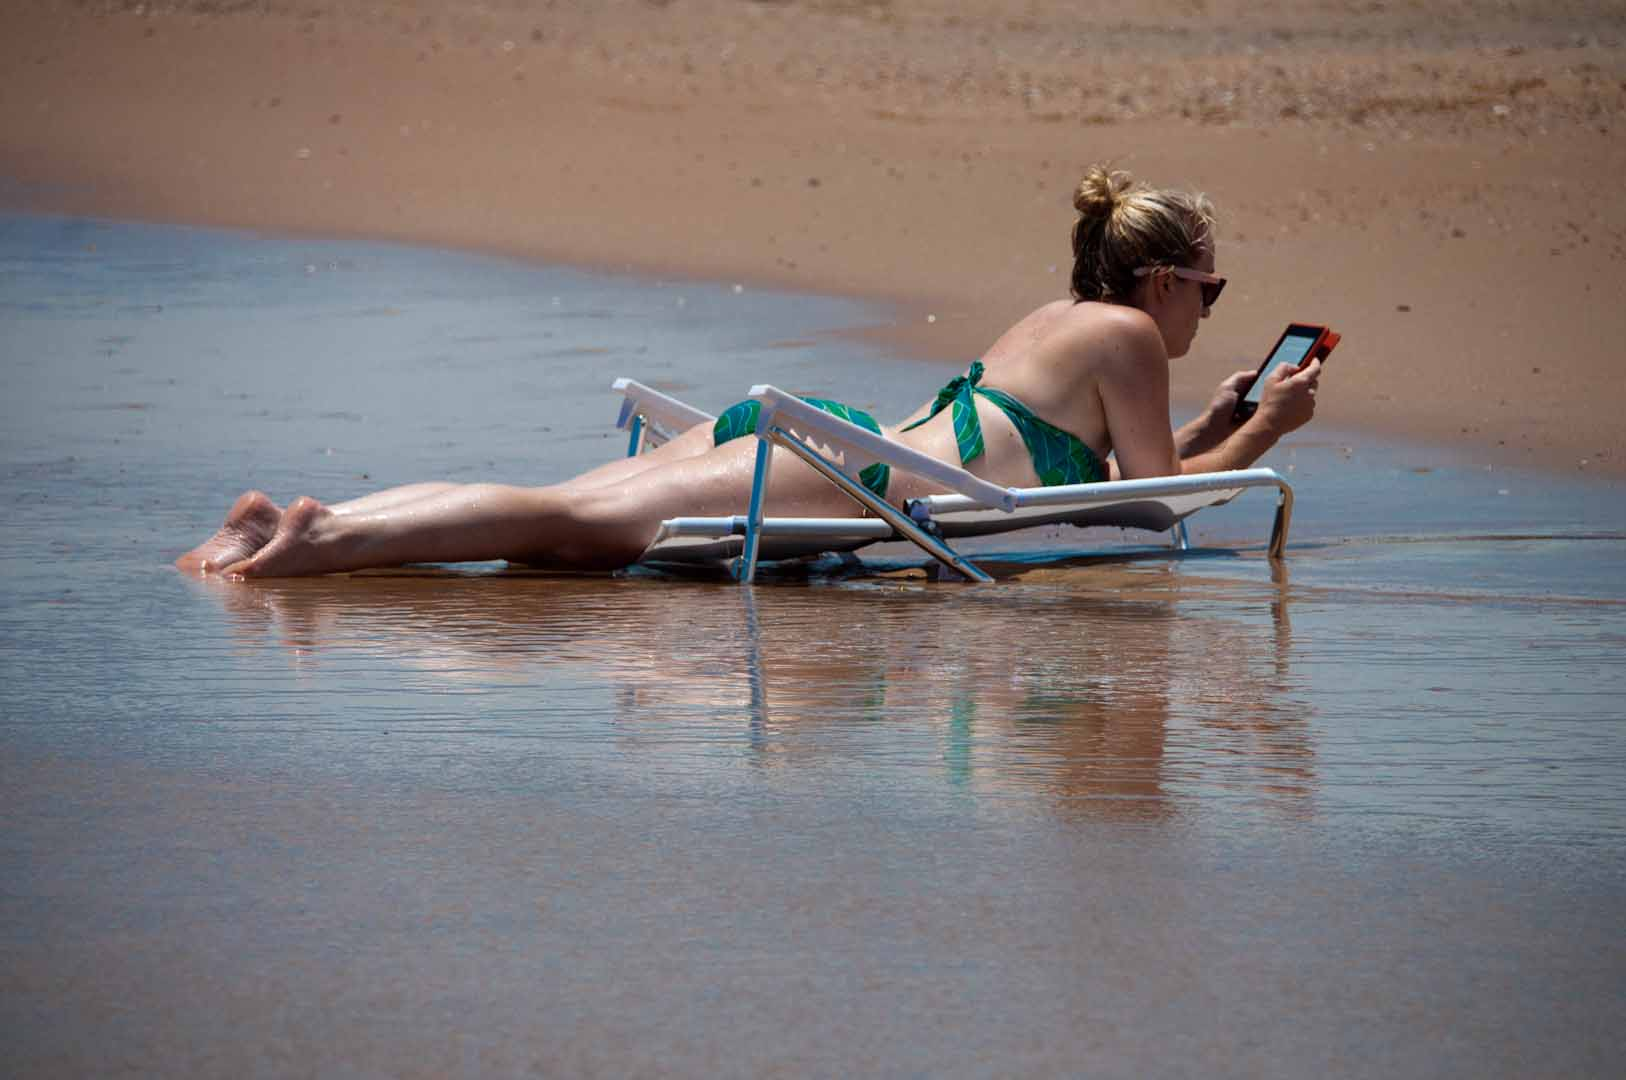 SurfsideLateJune_20150627_358